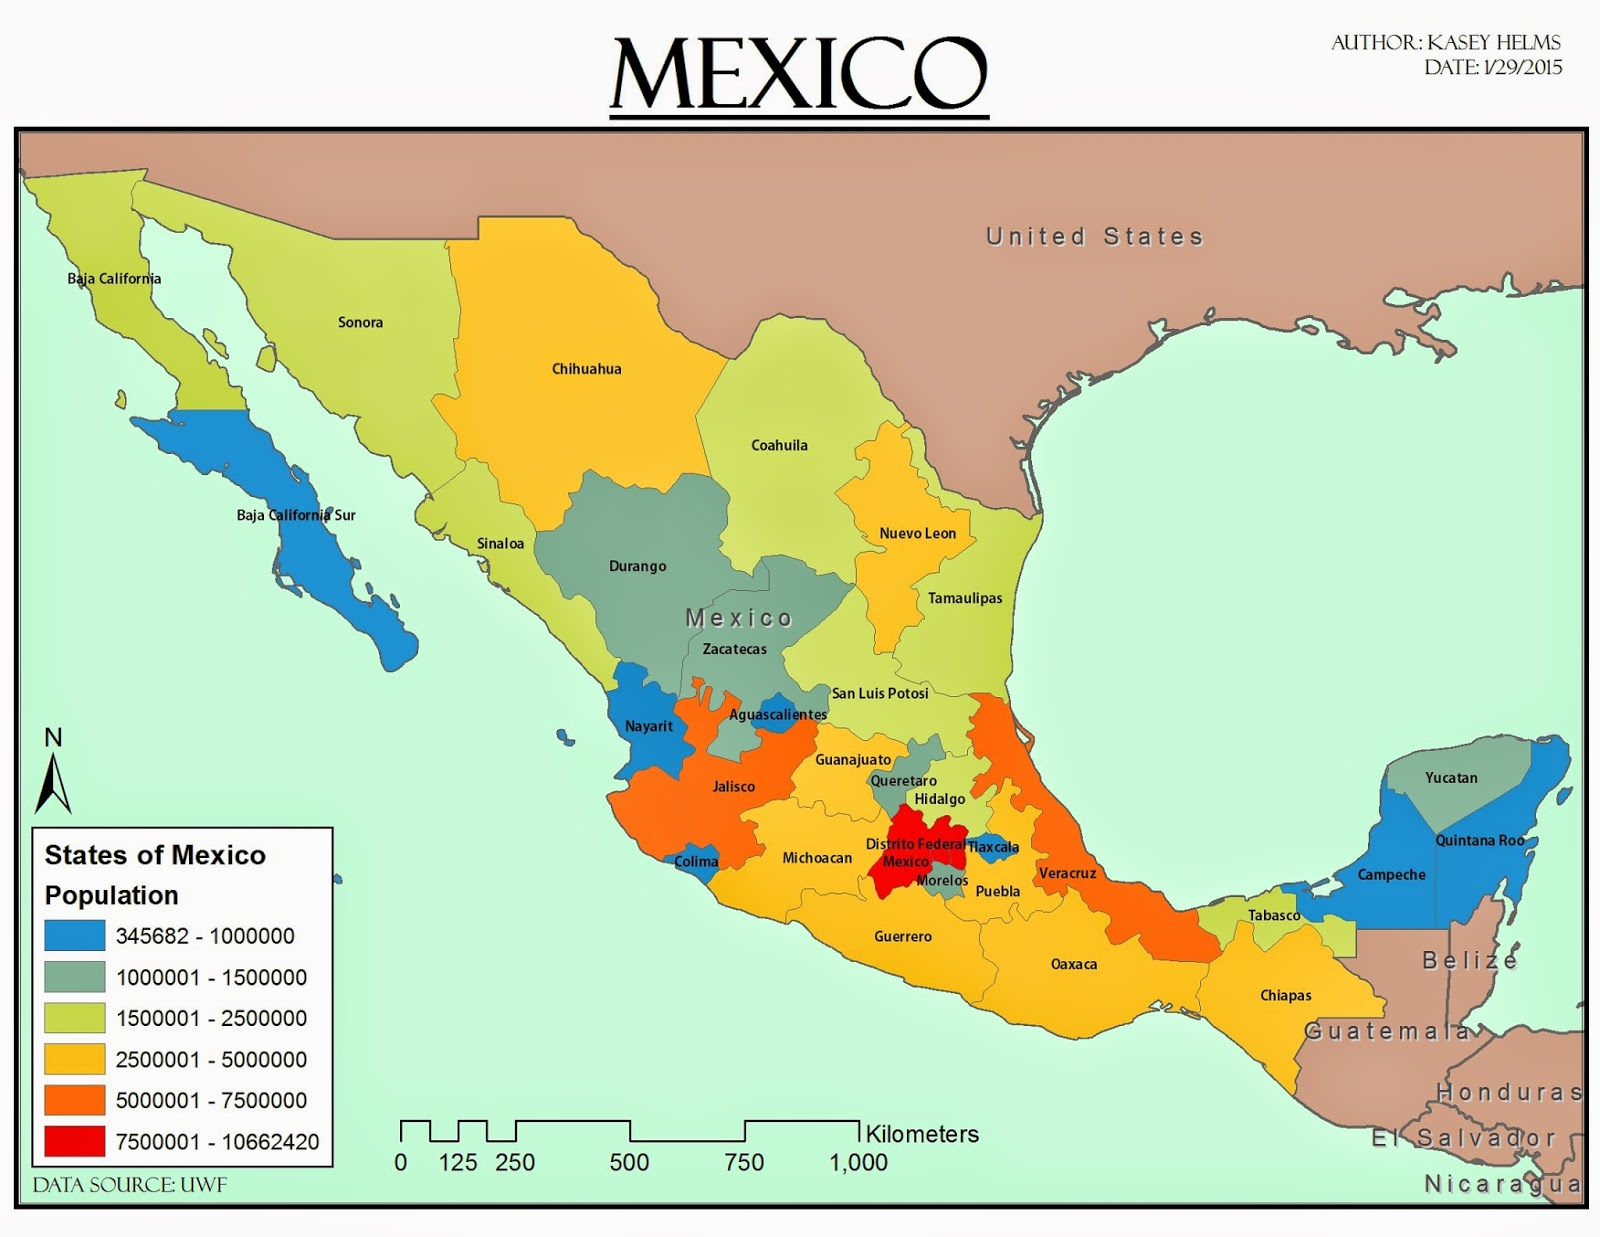 Kaseys Gis Adventure Gis Cartography Lab Week 3 - Create-us-map-color-coded